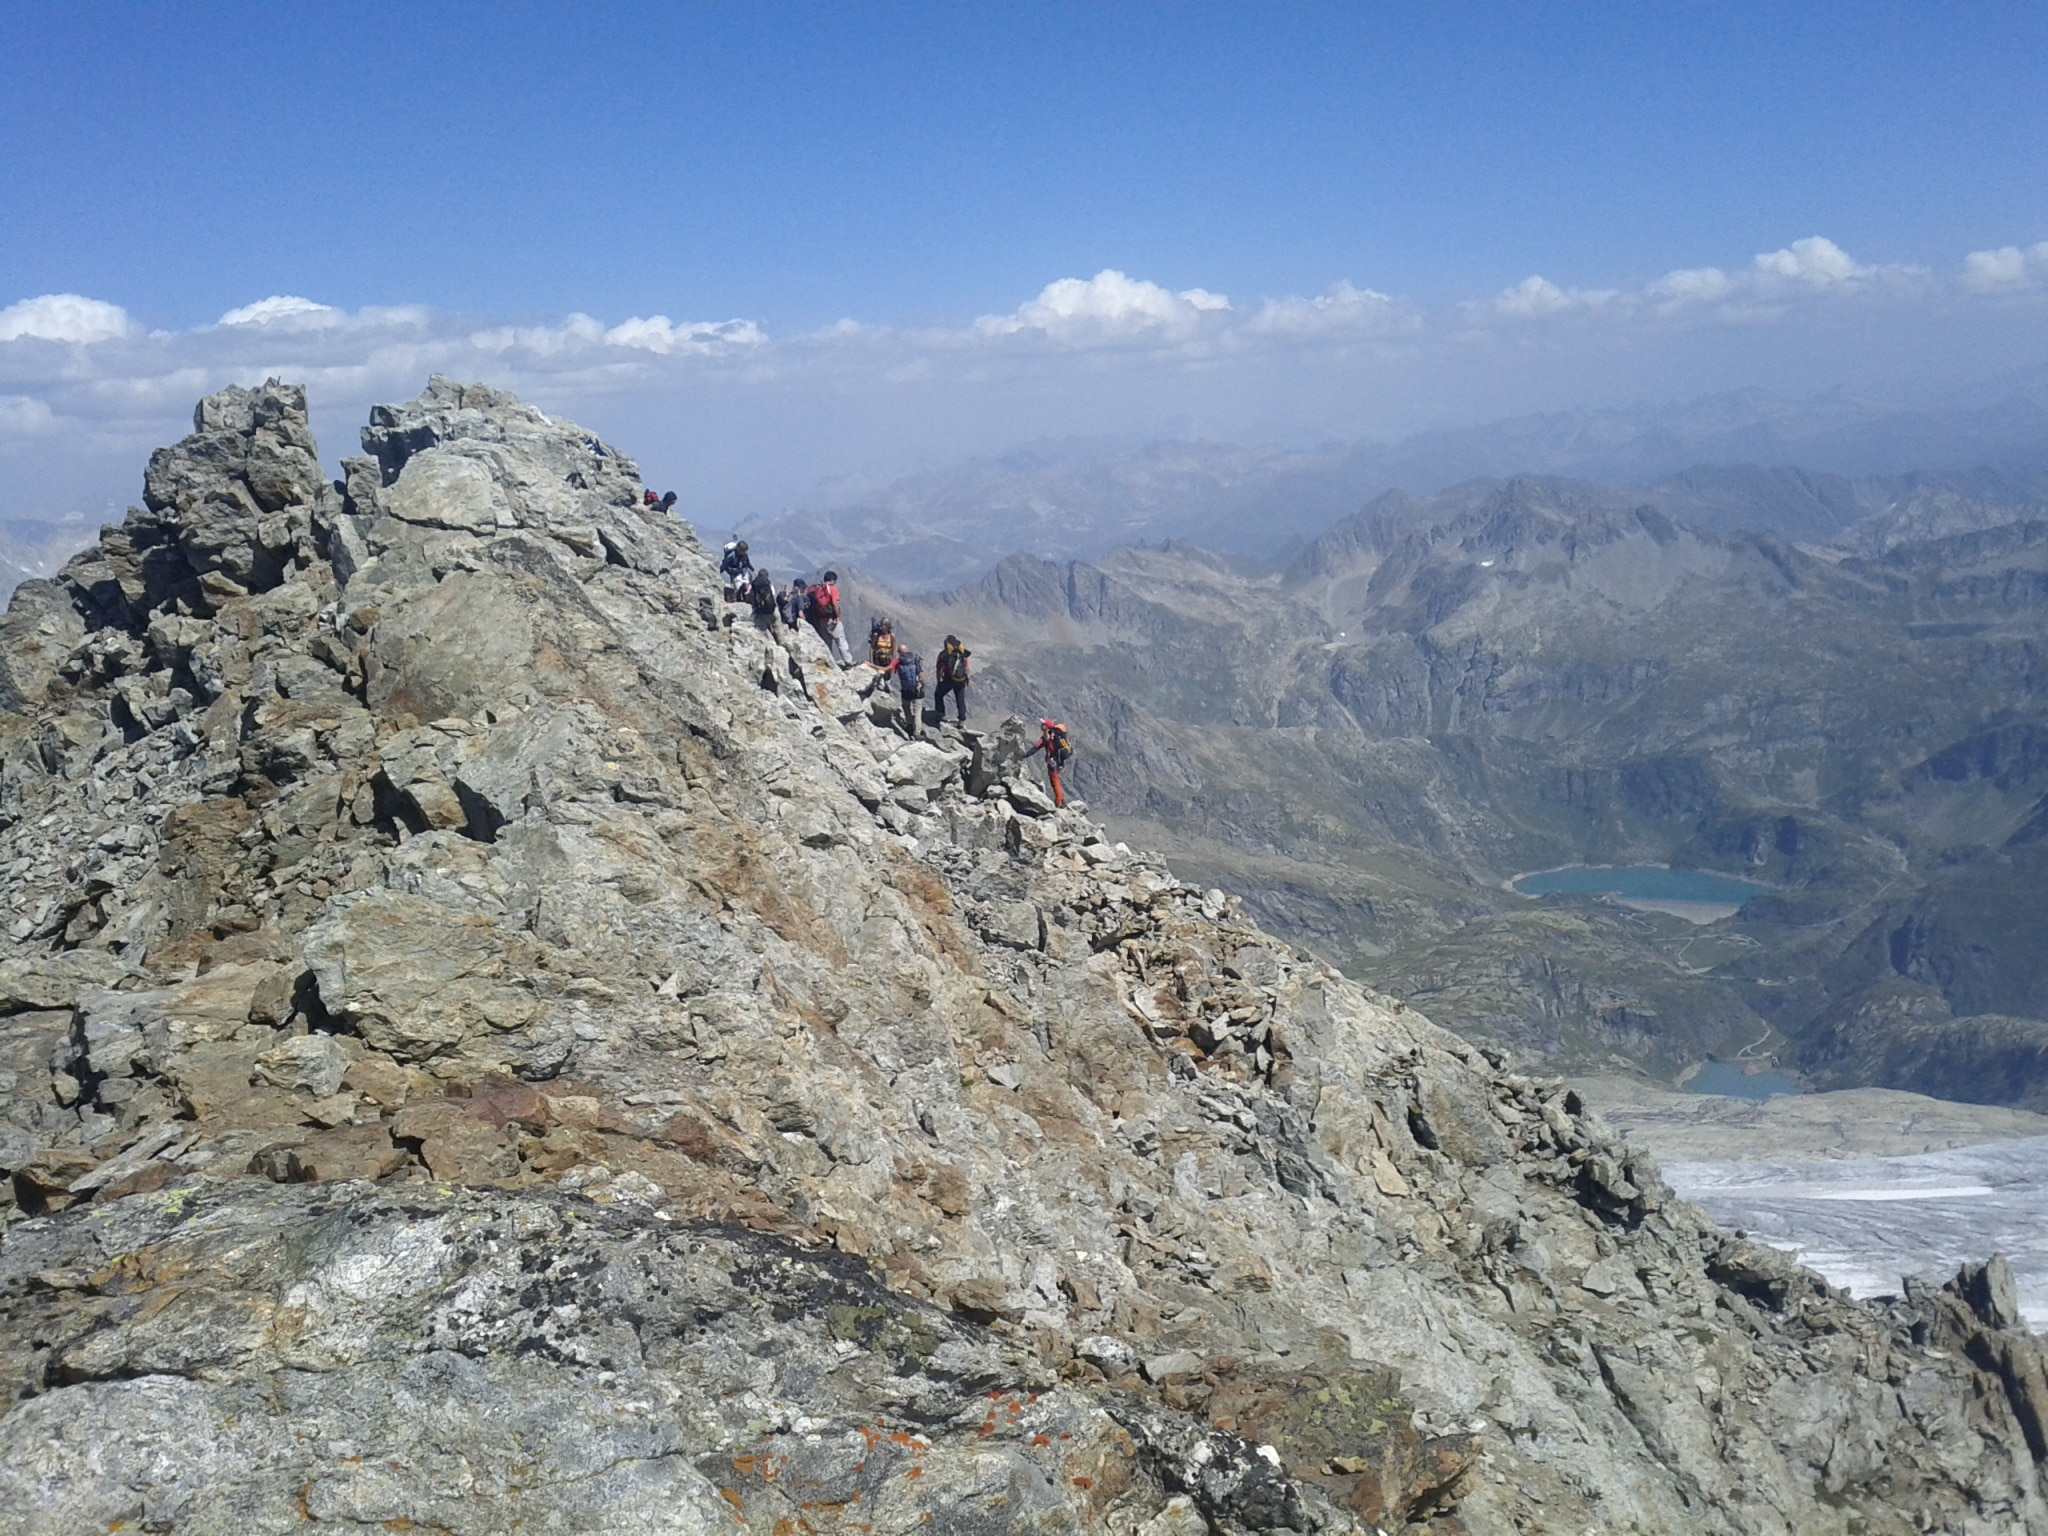 A family and friends descend from the summit of Basòdino.